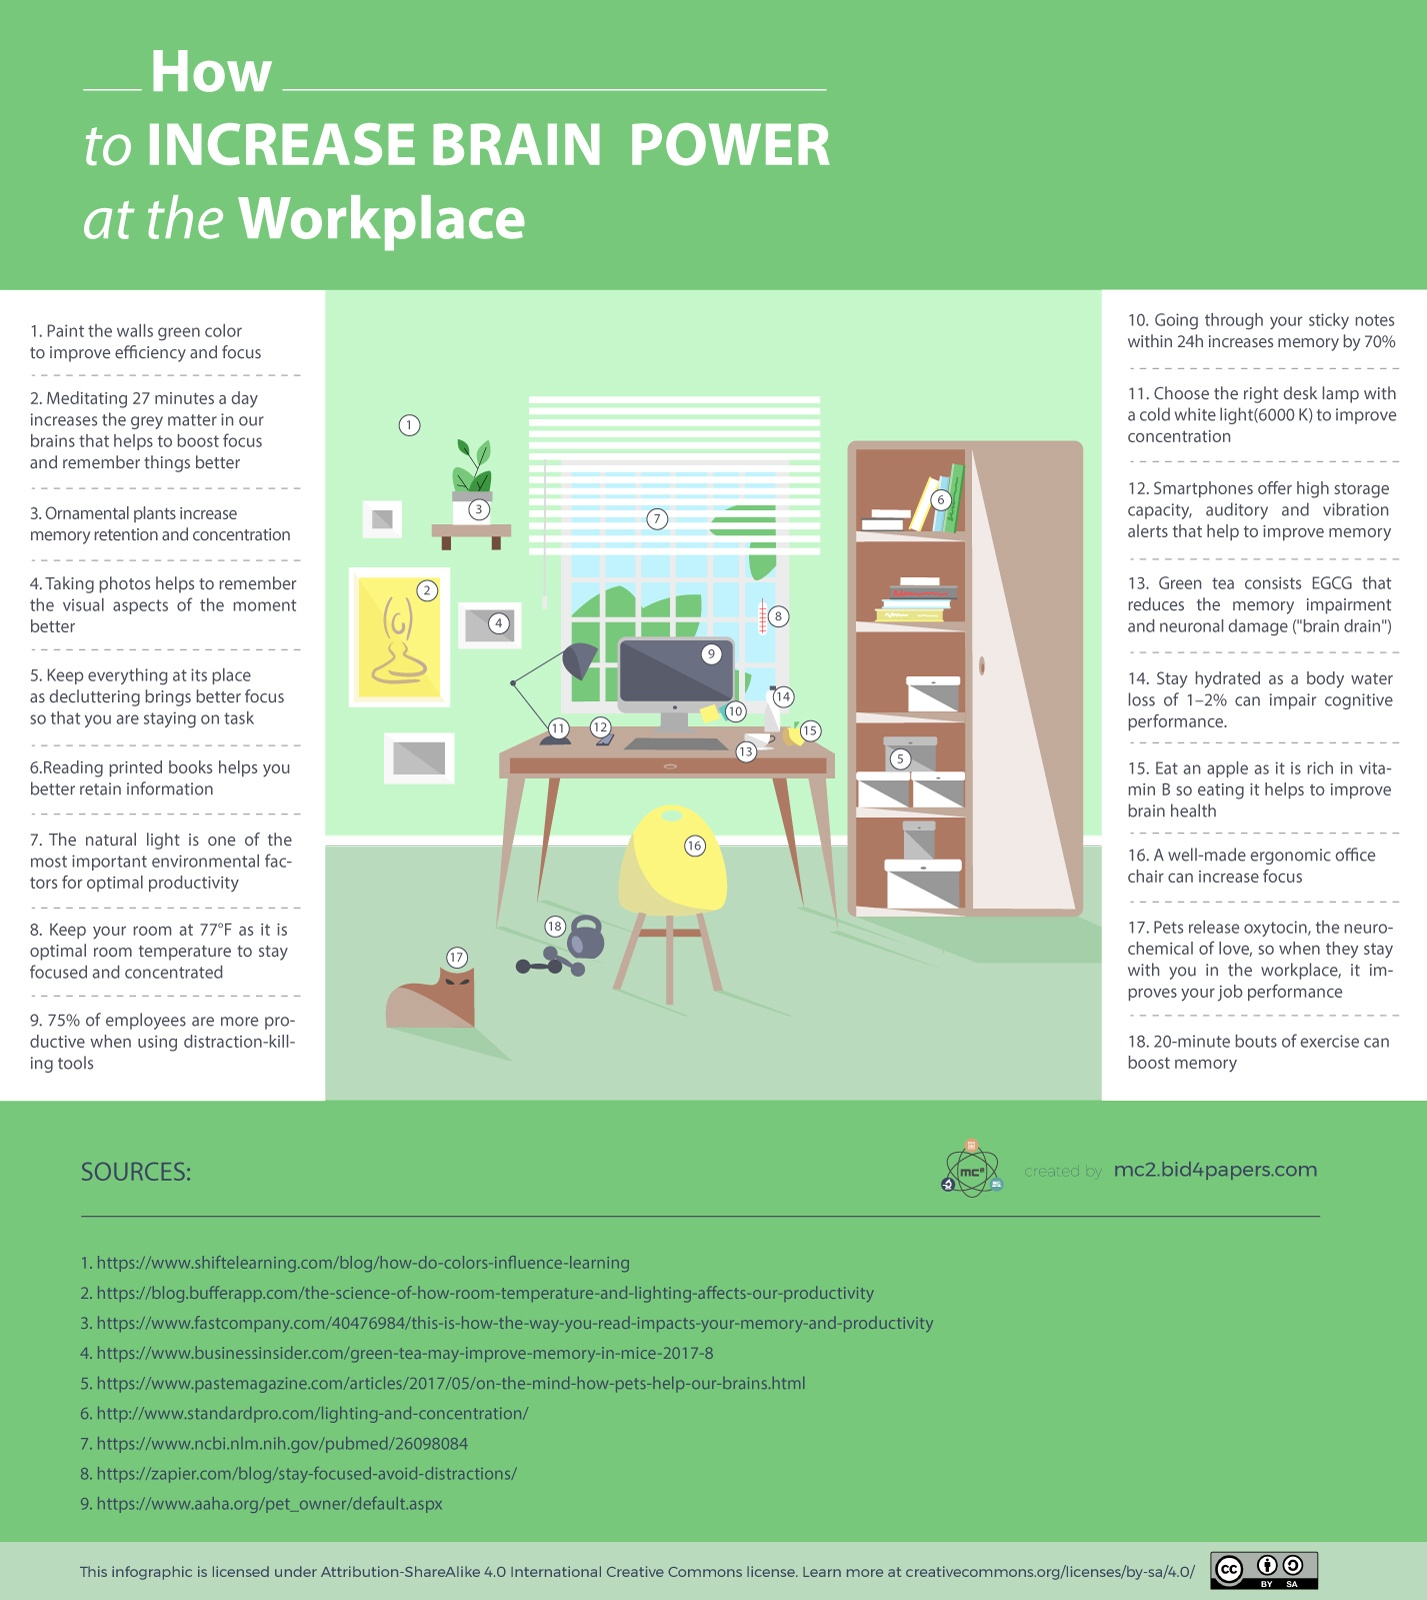 How To Increase Brain Power At The Workplace